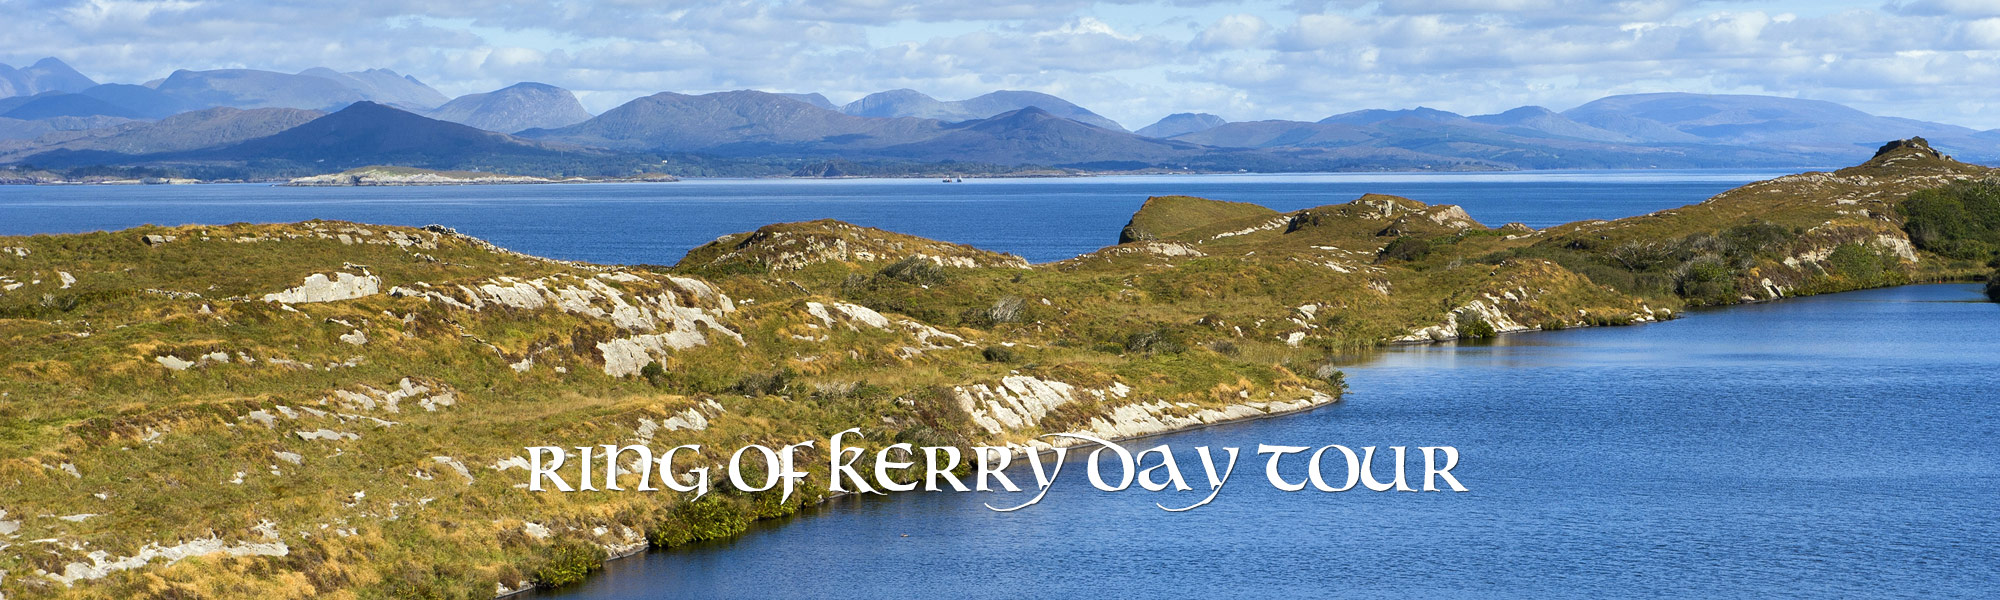 Ring of Kerry day tour